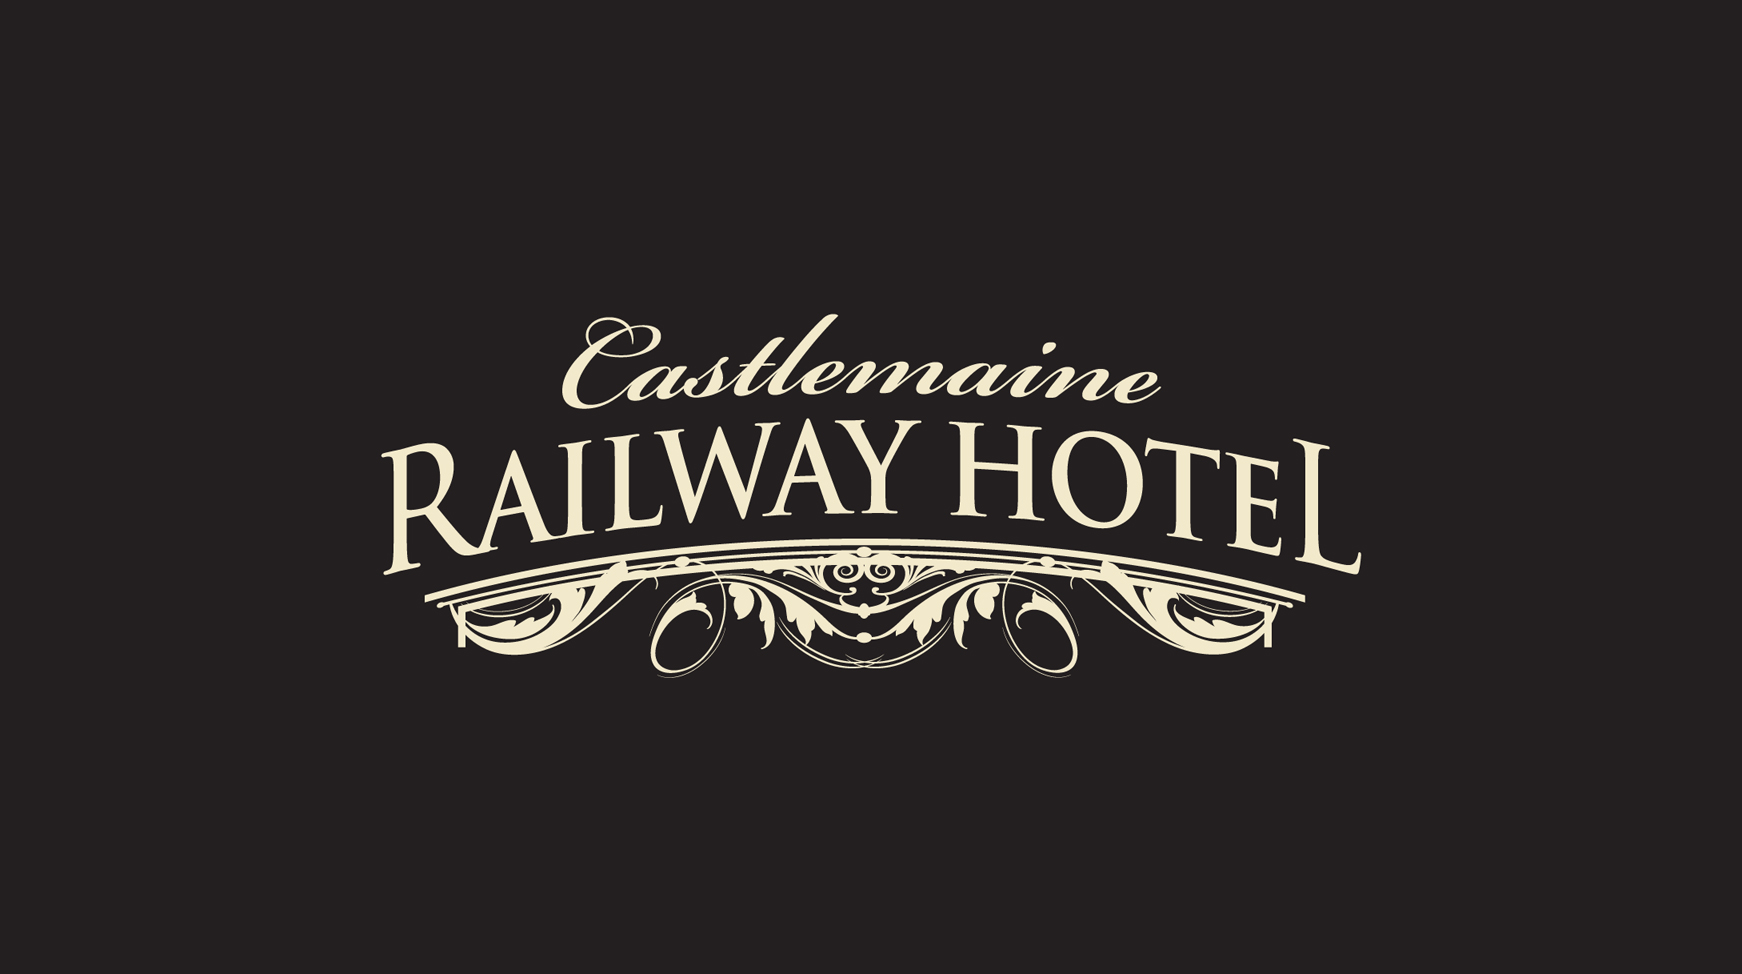 Railway Hotel Castlemaine - Accommodation Fremantle